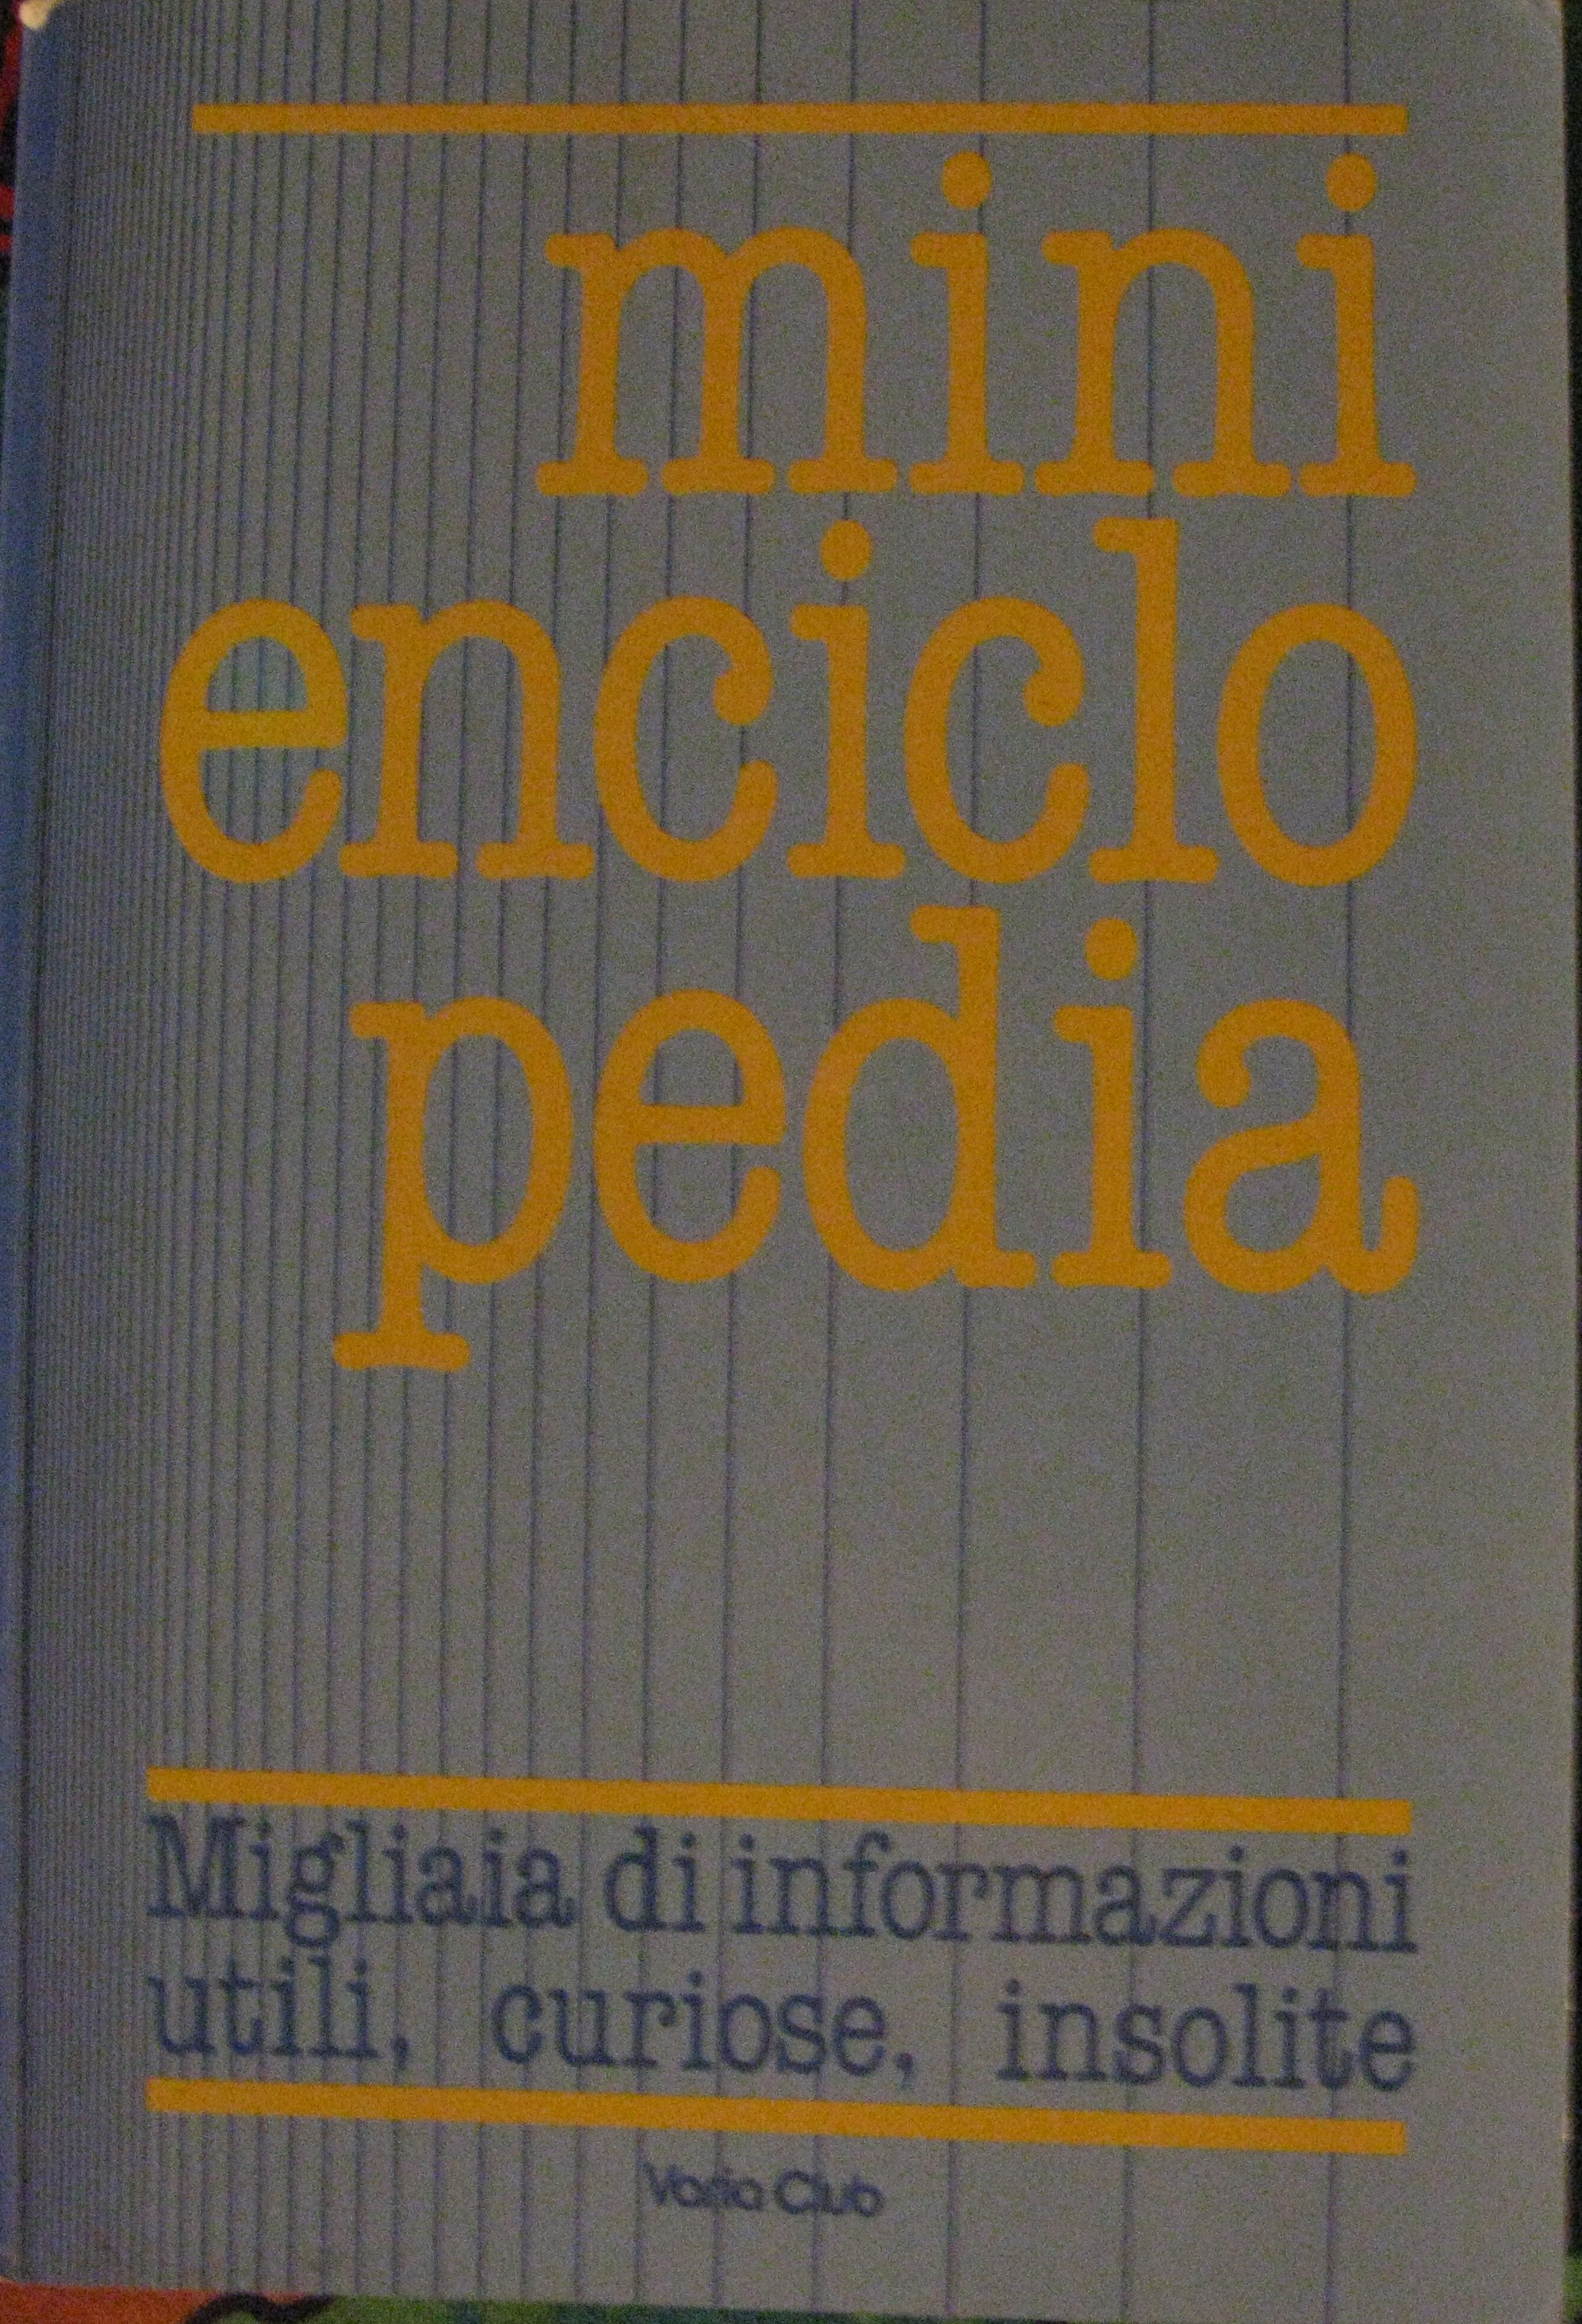 Mini enciclopedia